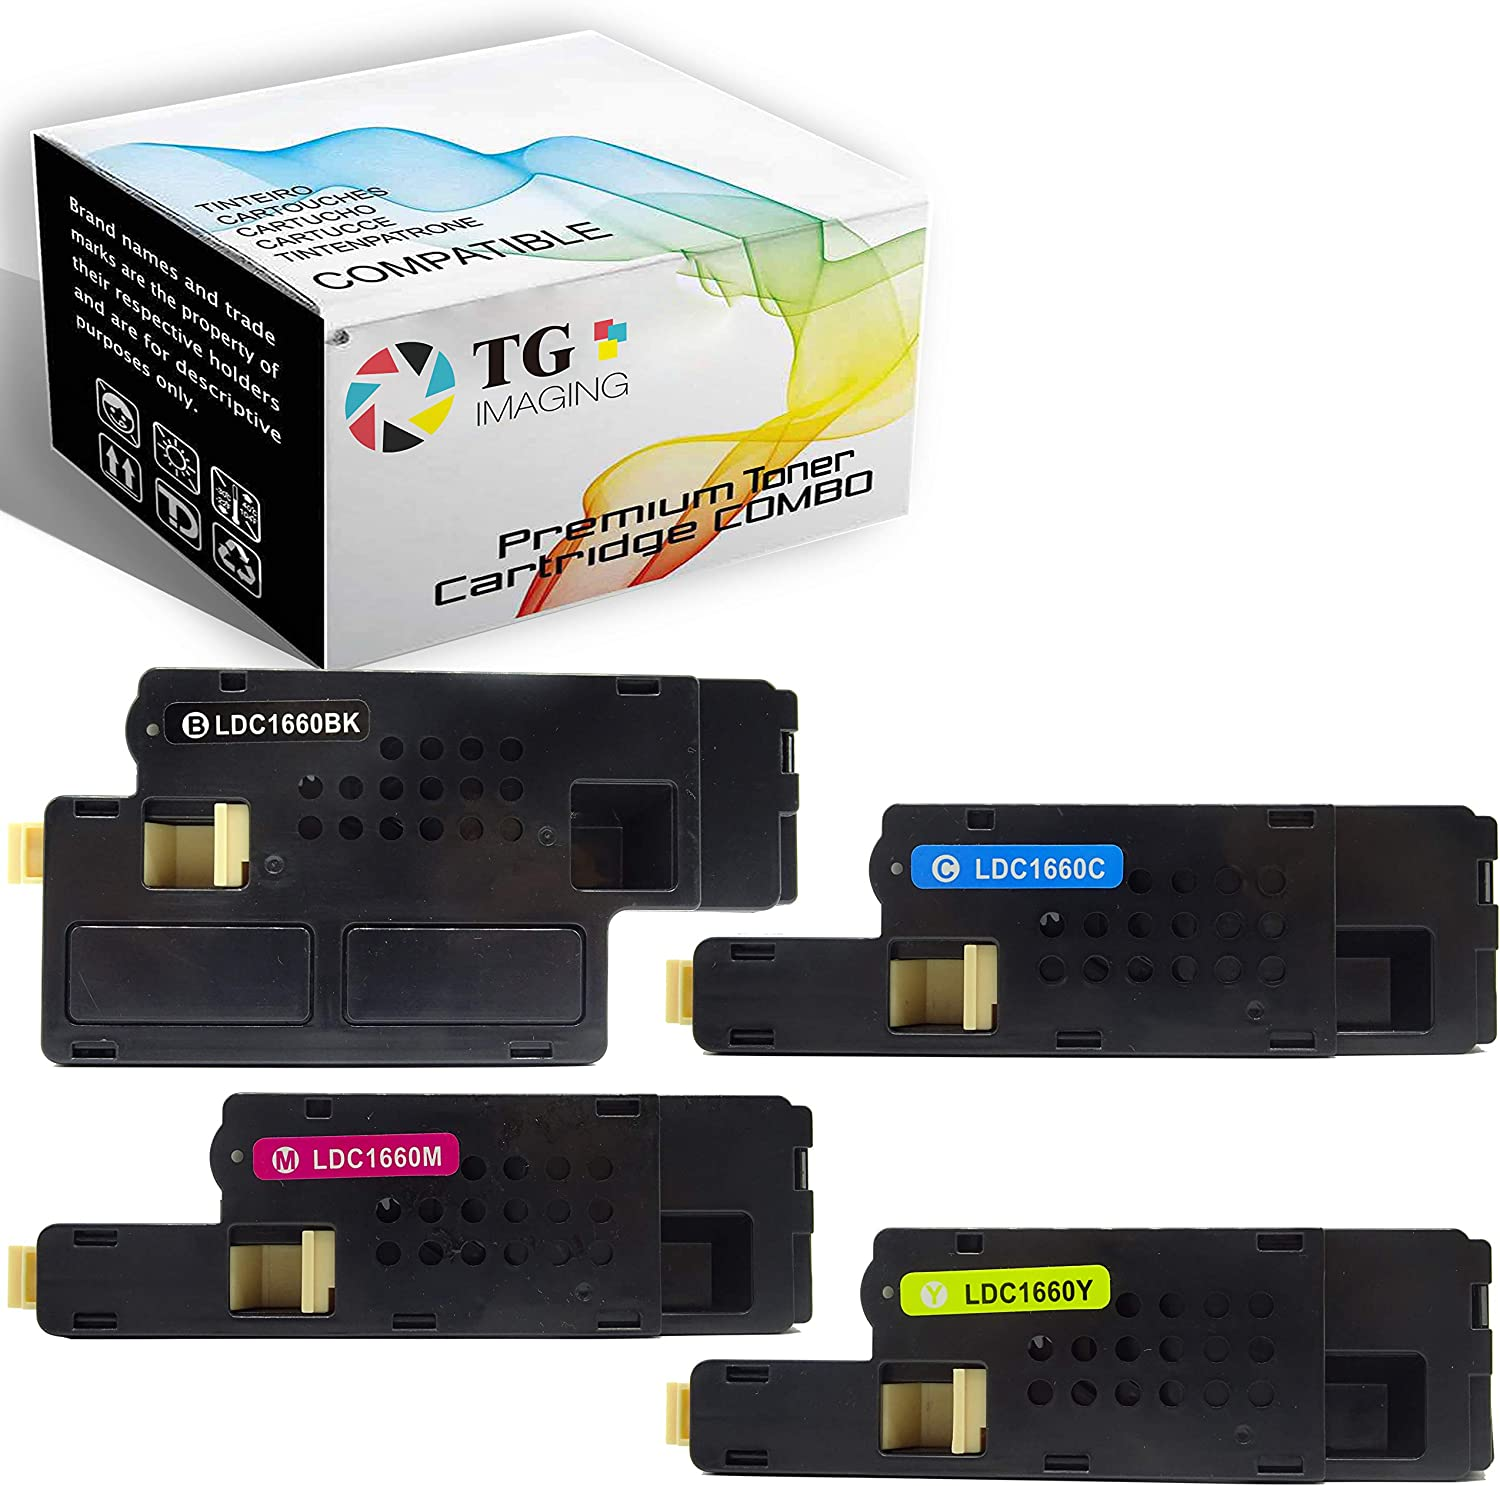 (4 Pack, B+C+Y+M) Compatible Dell 1660 Toner Cartridge C1660w (332-0399 + 332-0400 + 332-0401 + 332-0402) Replacement for C1660w Printer, Sold by TG Imaging